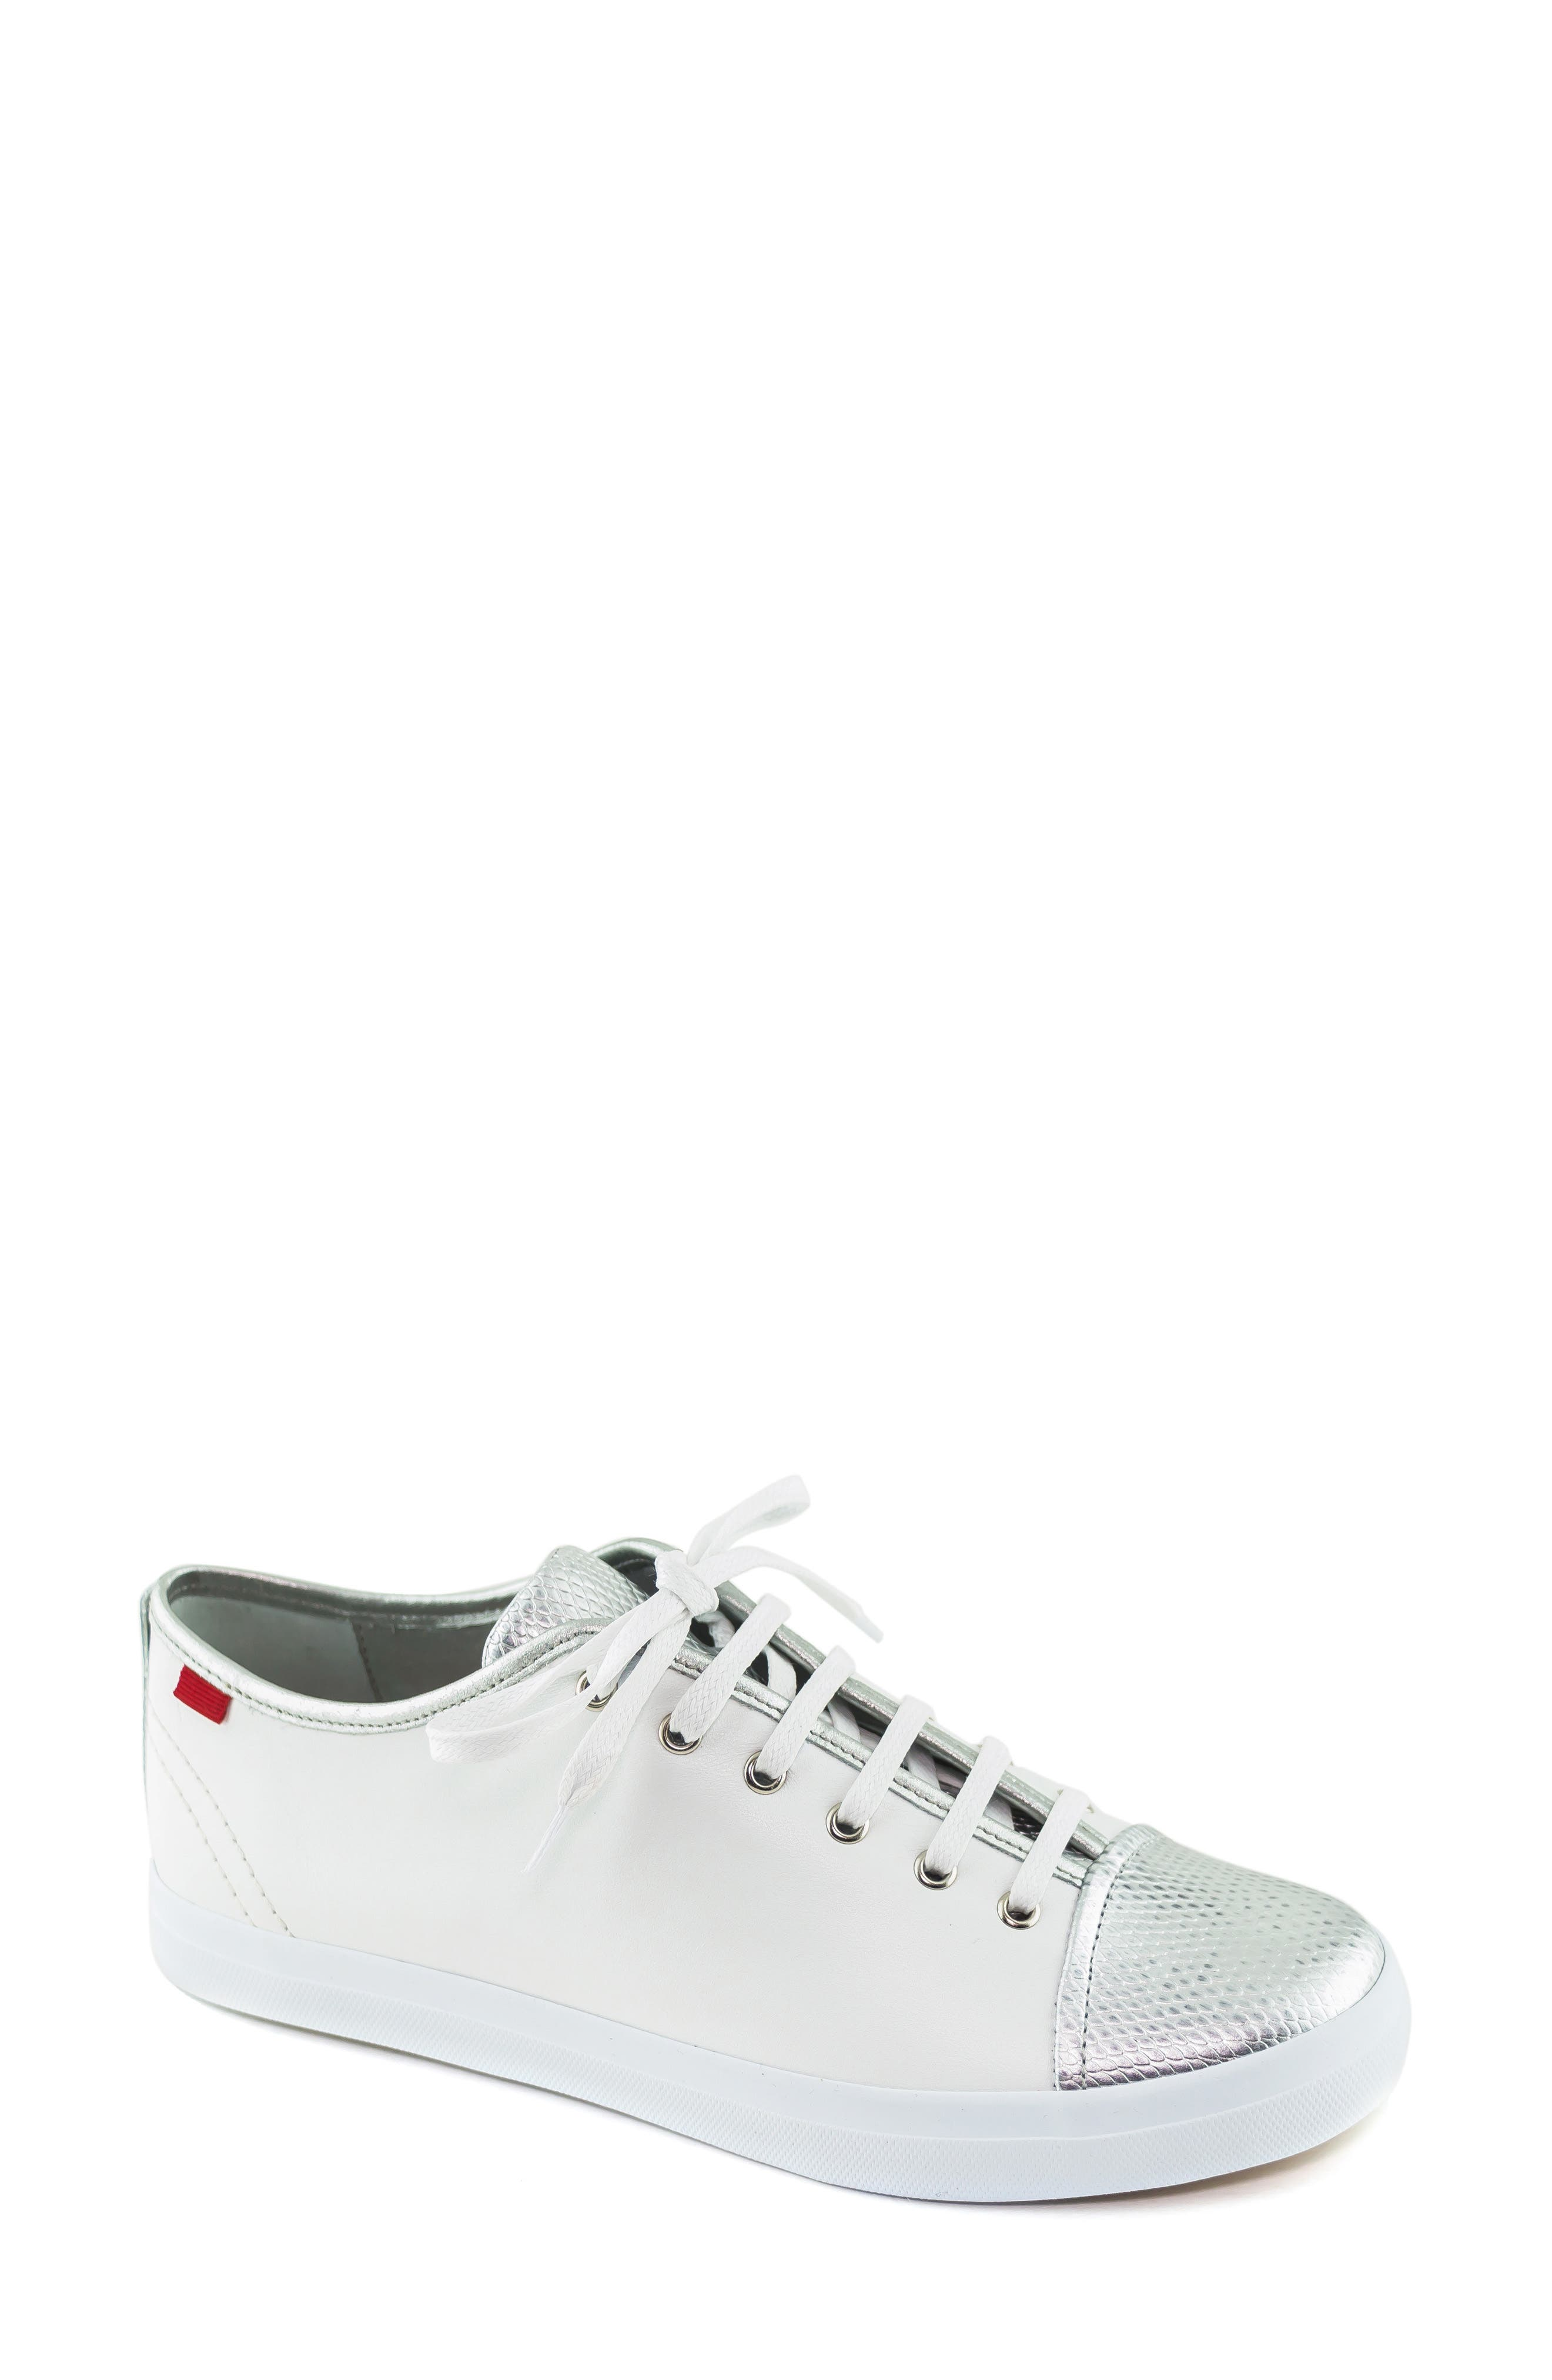 MARC JOSEPH NEW YORK Bleecker Street Sneaker, Main, color, WHITE/ GIPSY SILVER LEATHER